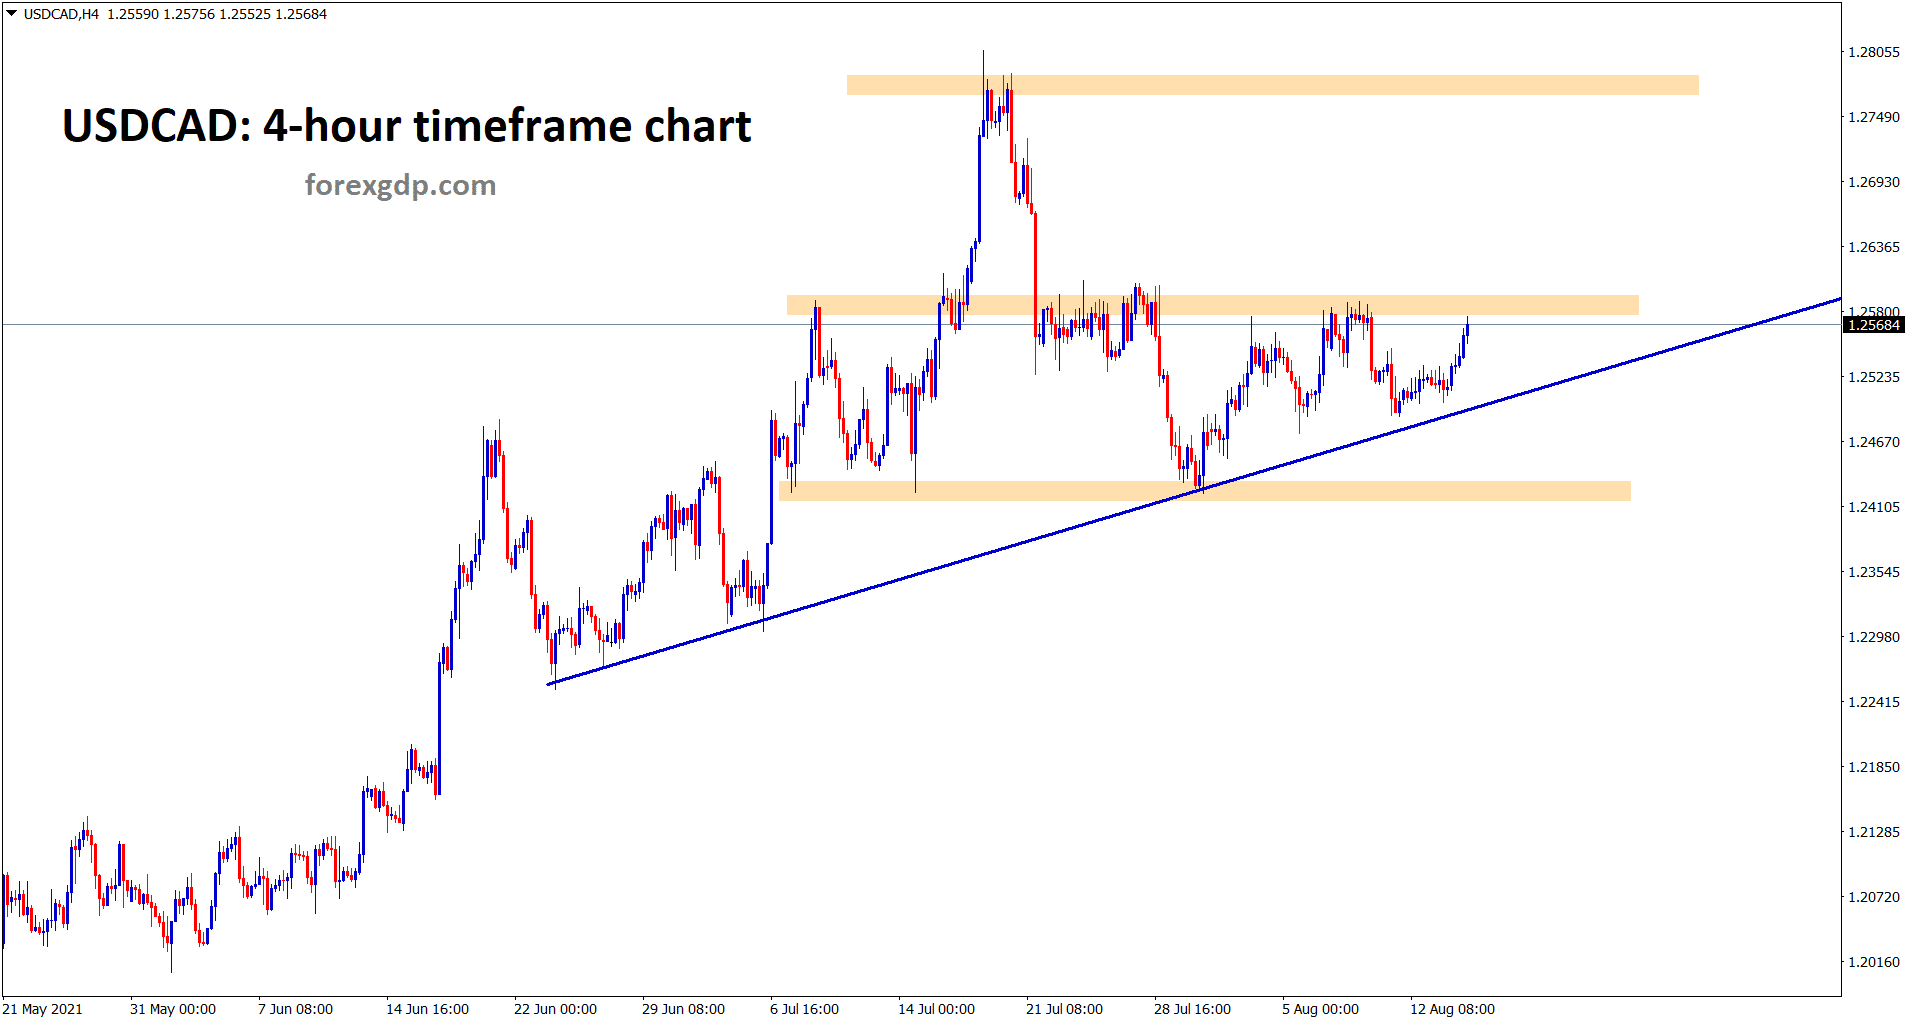 USDCAD moving in an uptrend range between the resistance and support